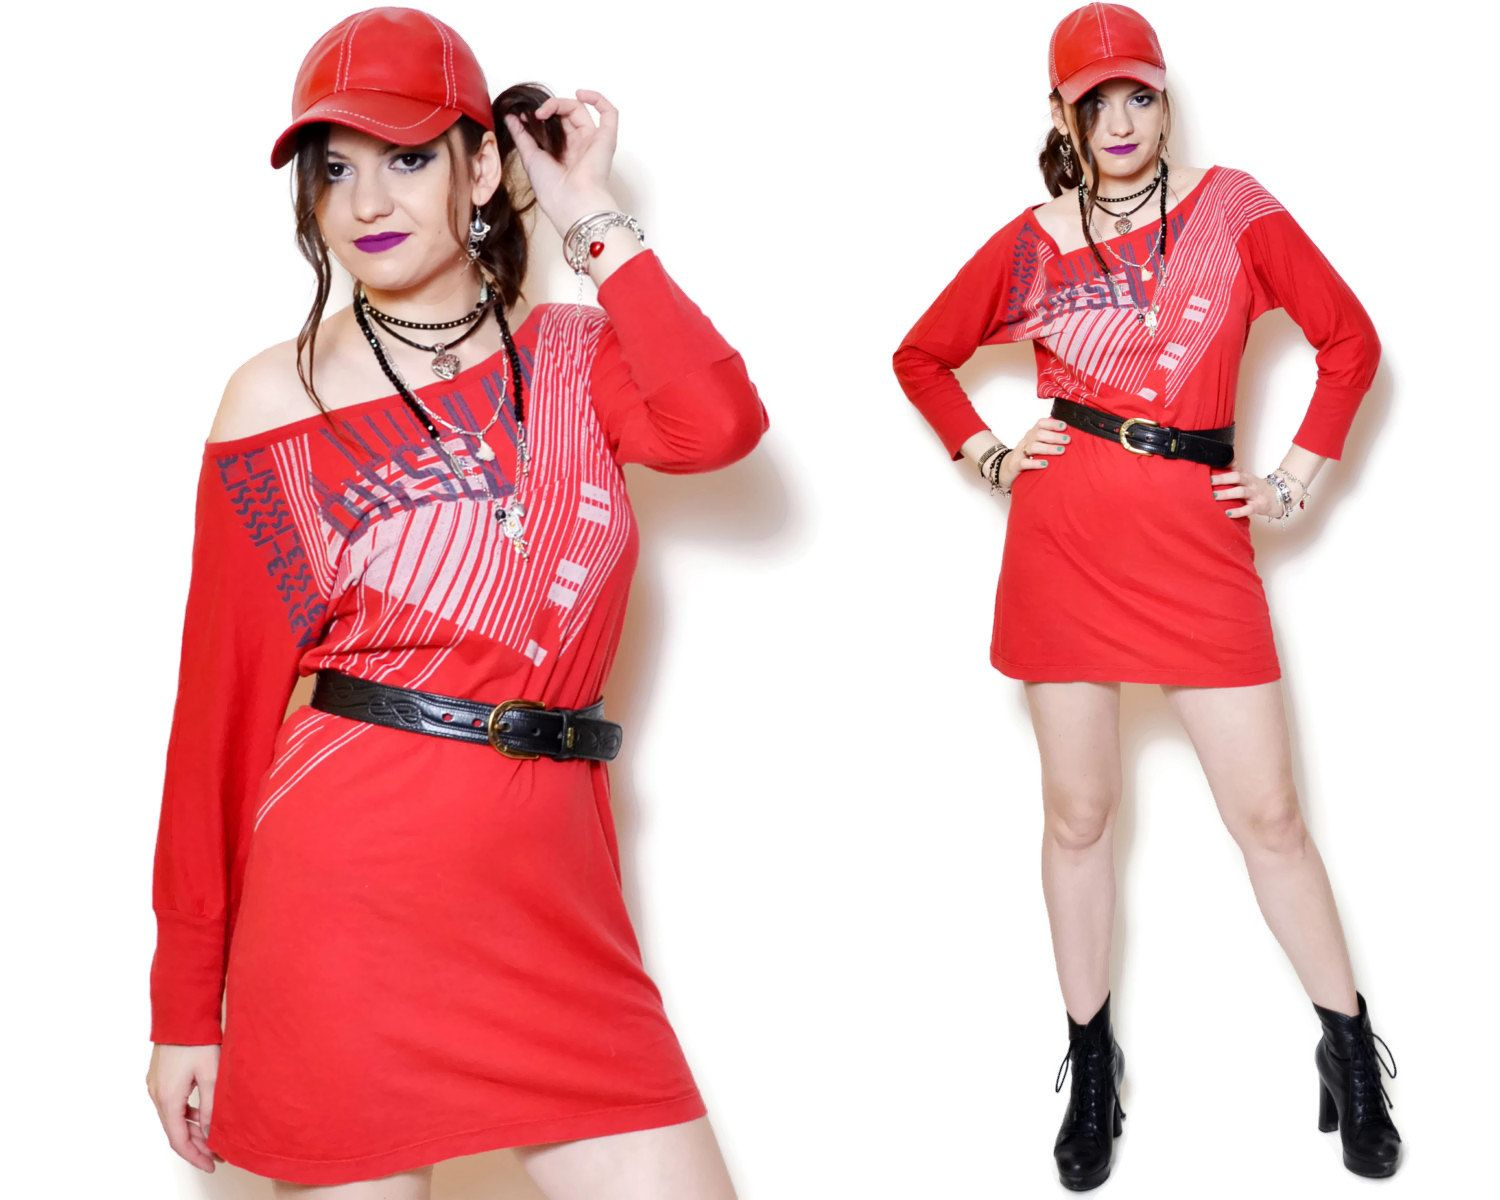 Vintage red dress with sayings theres a small hole near one of the